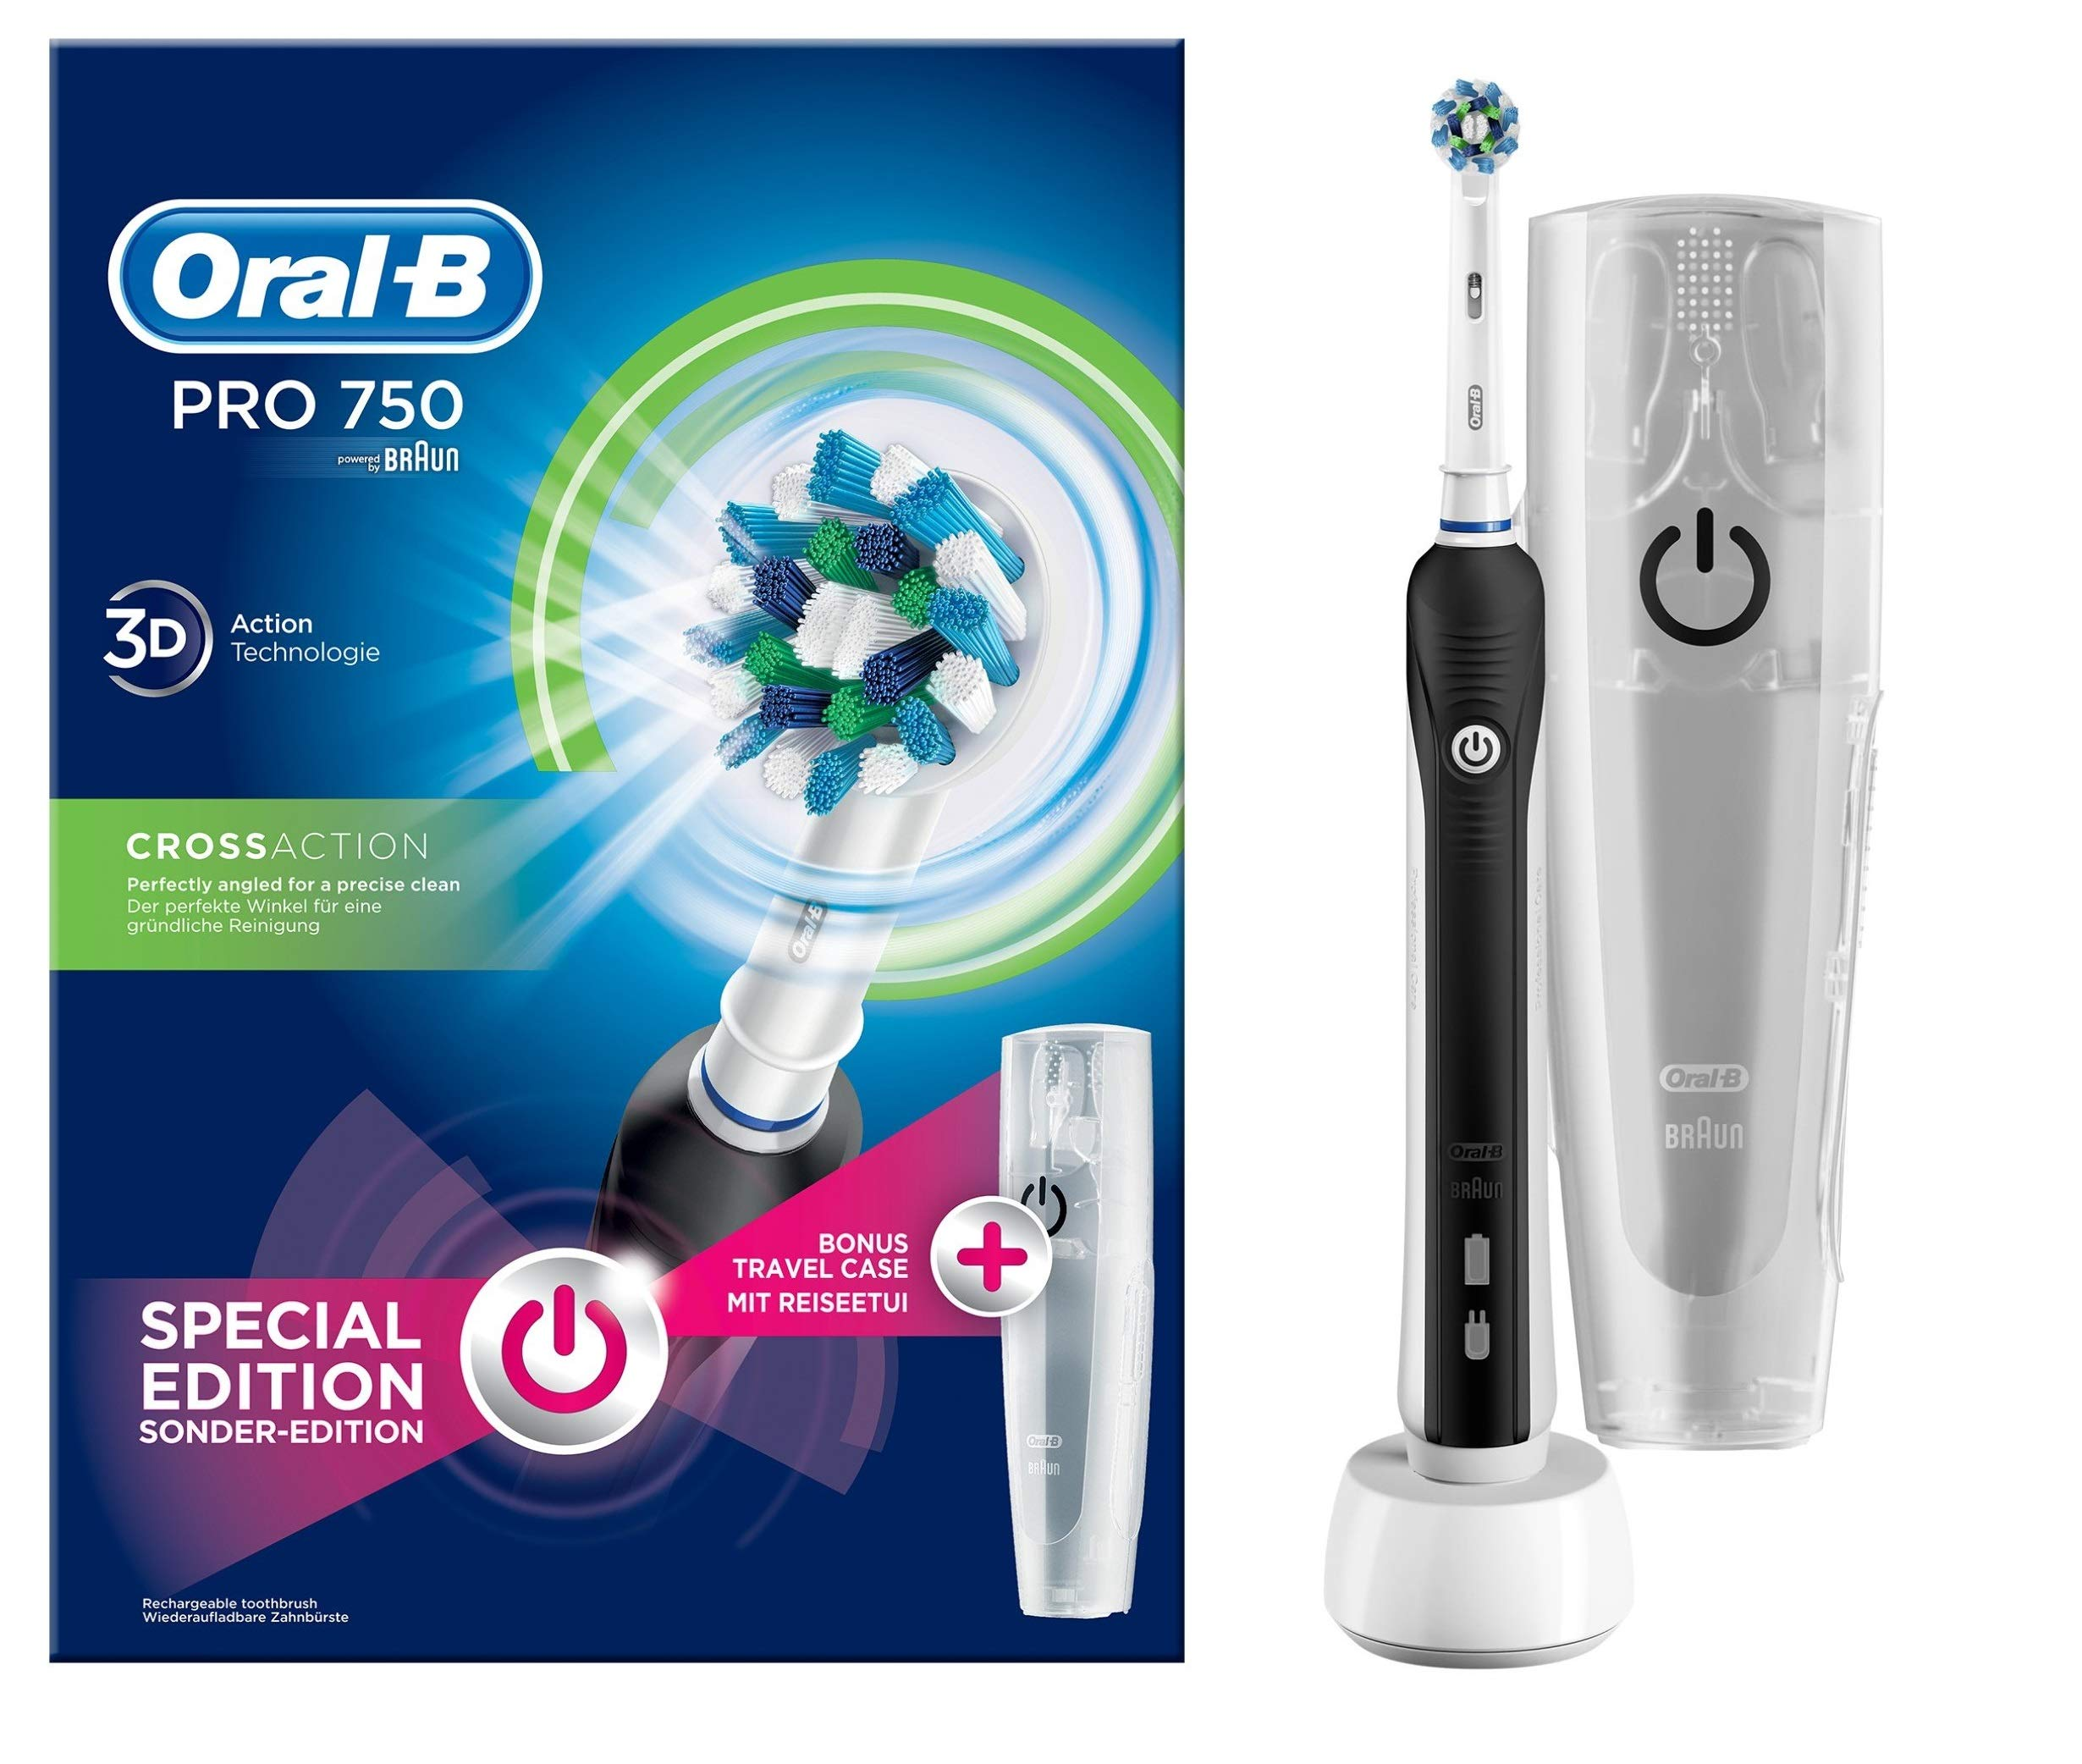 Oral-B PRO 750 CrossAction Cepillo de Dientes Eléctrico Recargable Pack Regalo product image